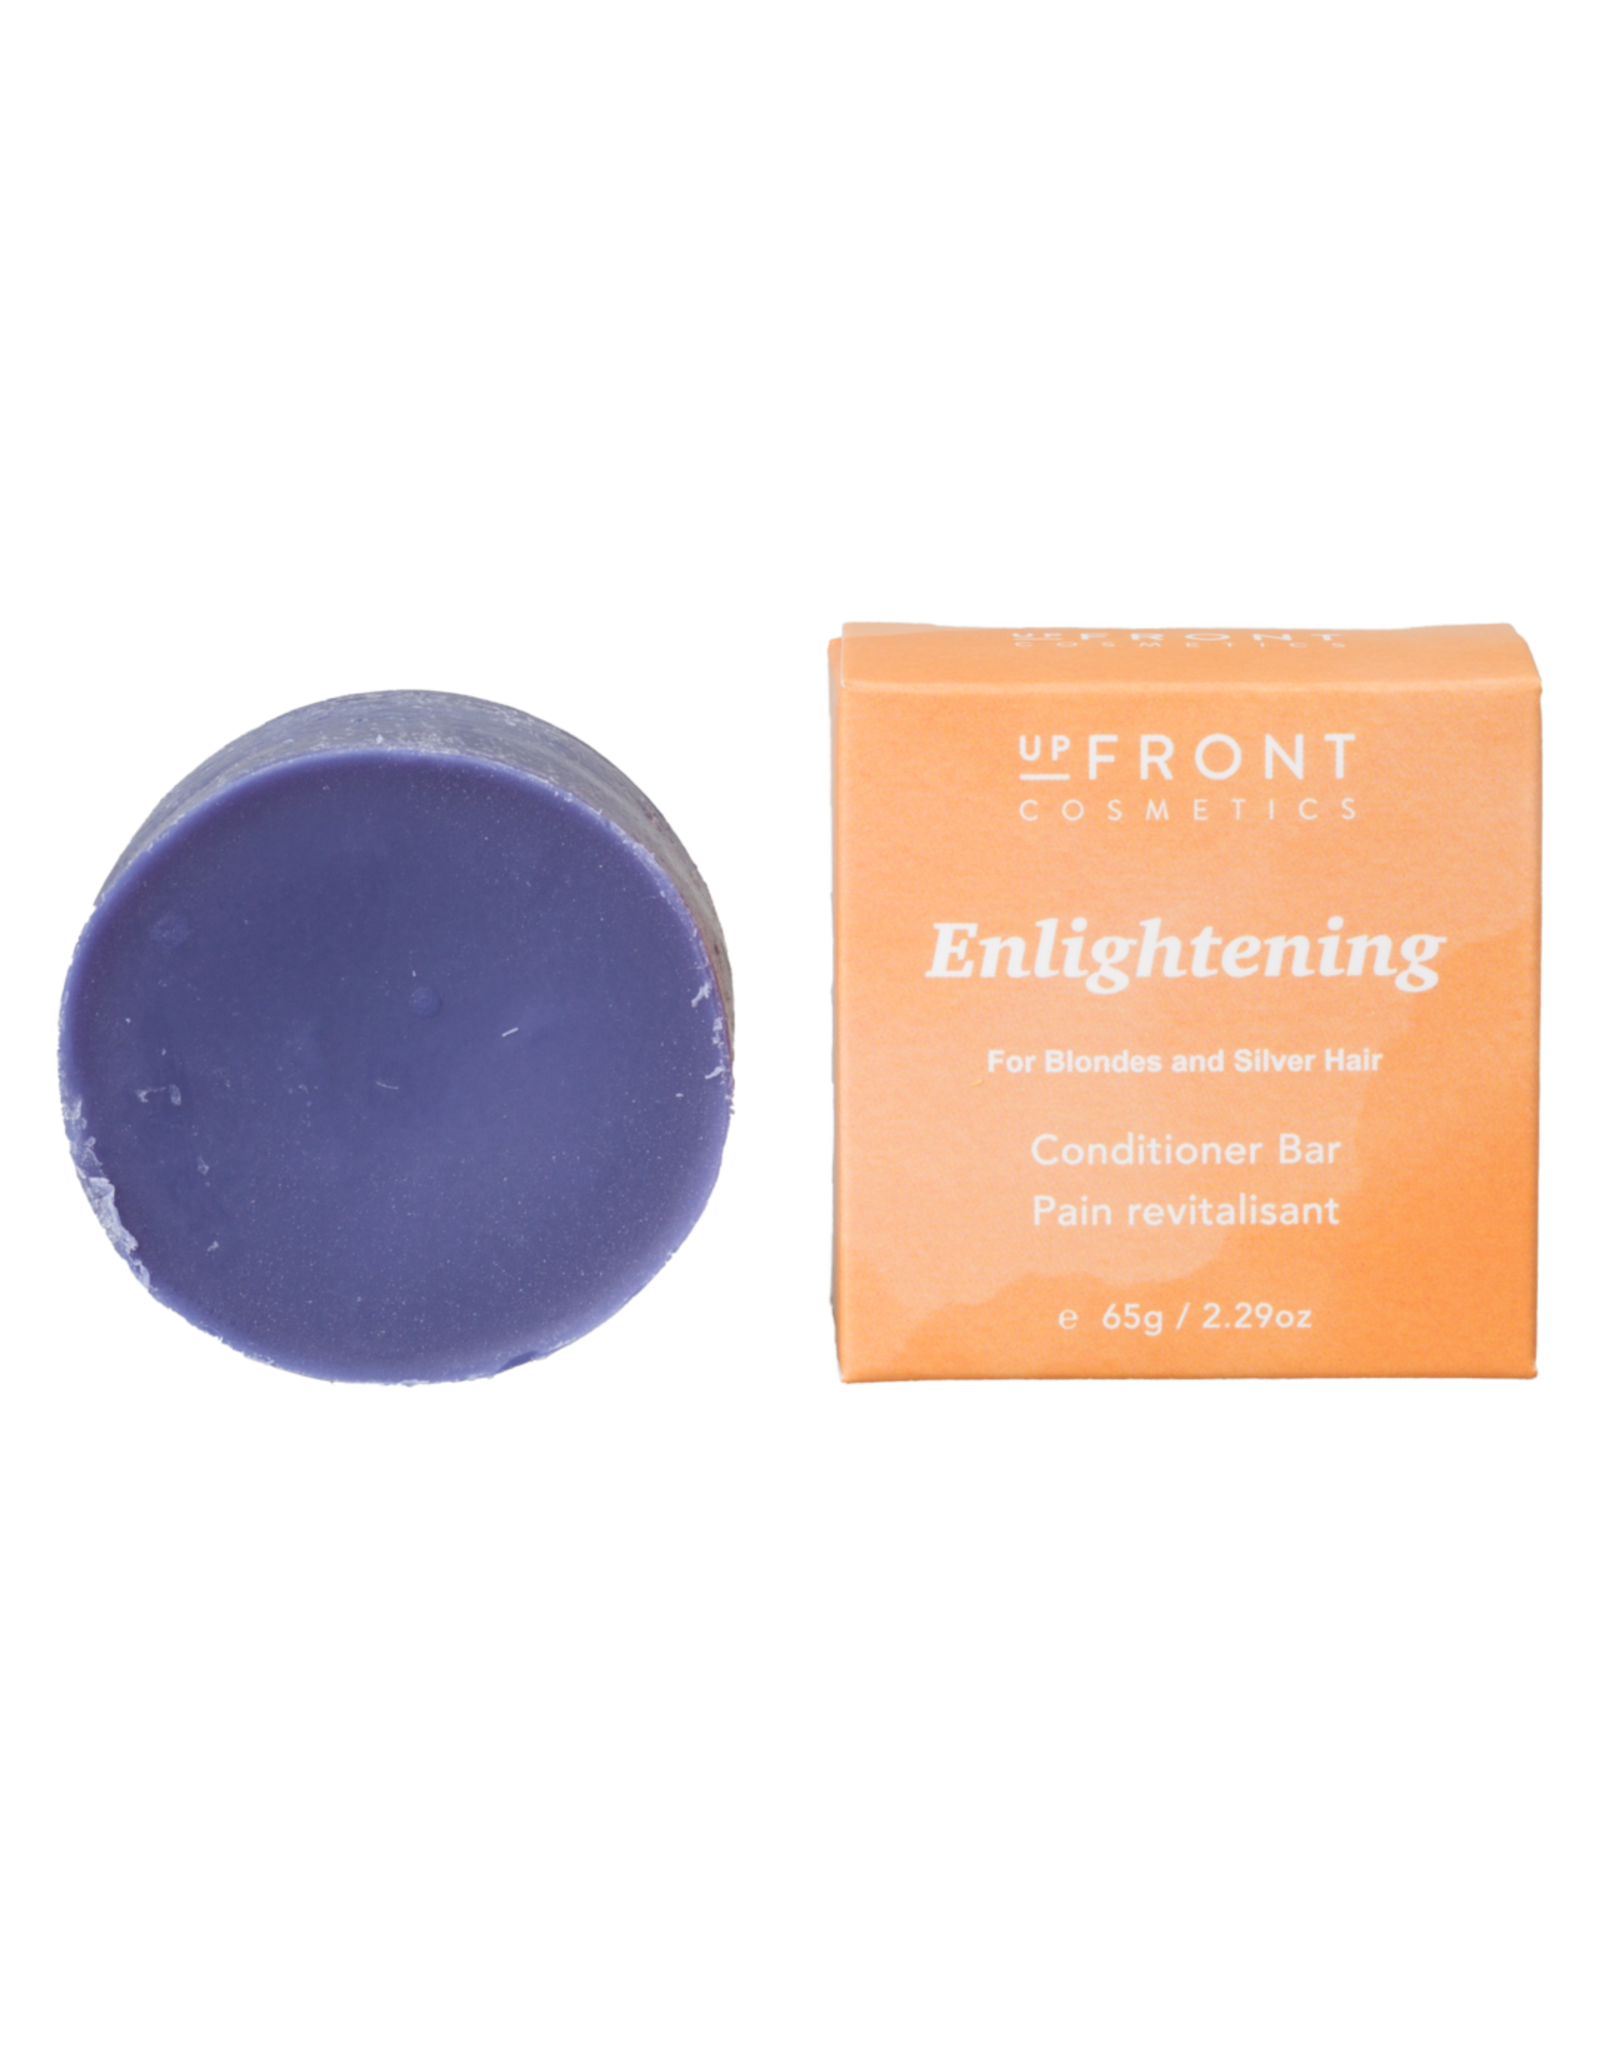 Upfront Cosmetics Conditioner Bar by Upfront Cosmetics